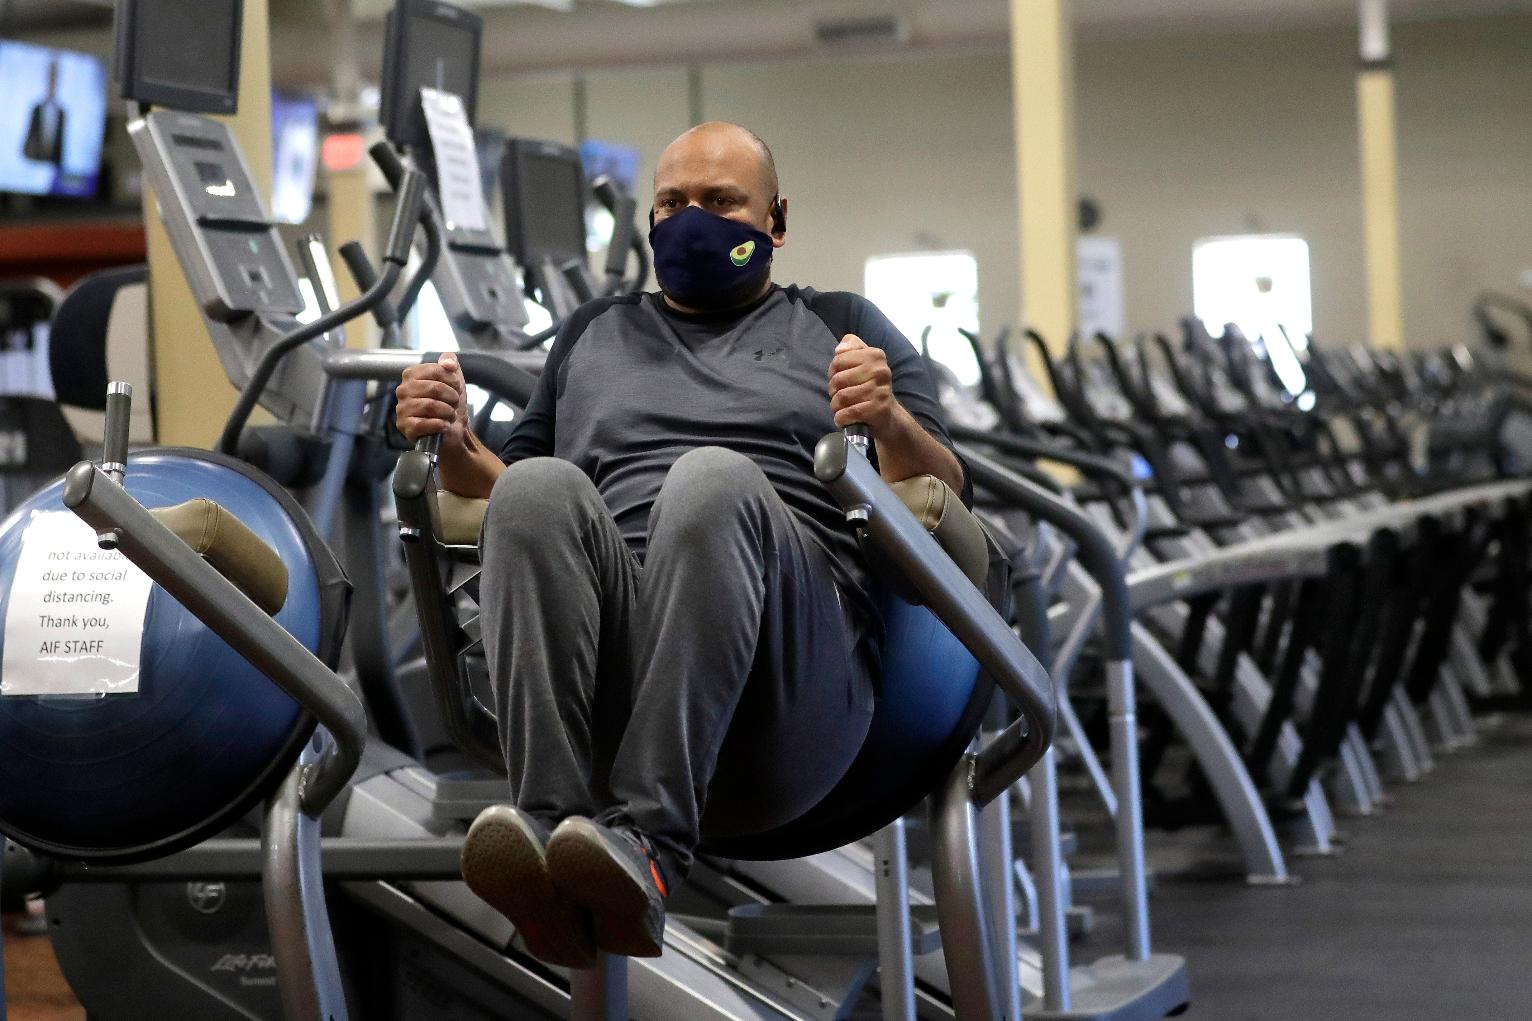 Gyms Movie Theaters Allowed To Reopen But Some Don T Massachusetts News Us News